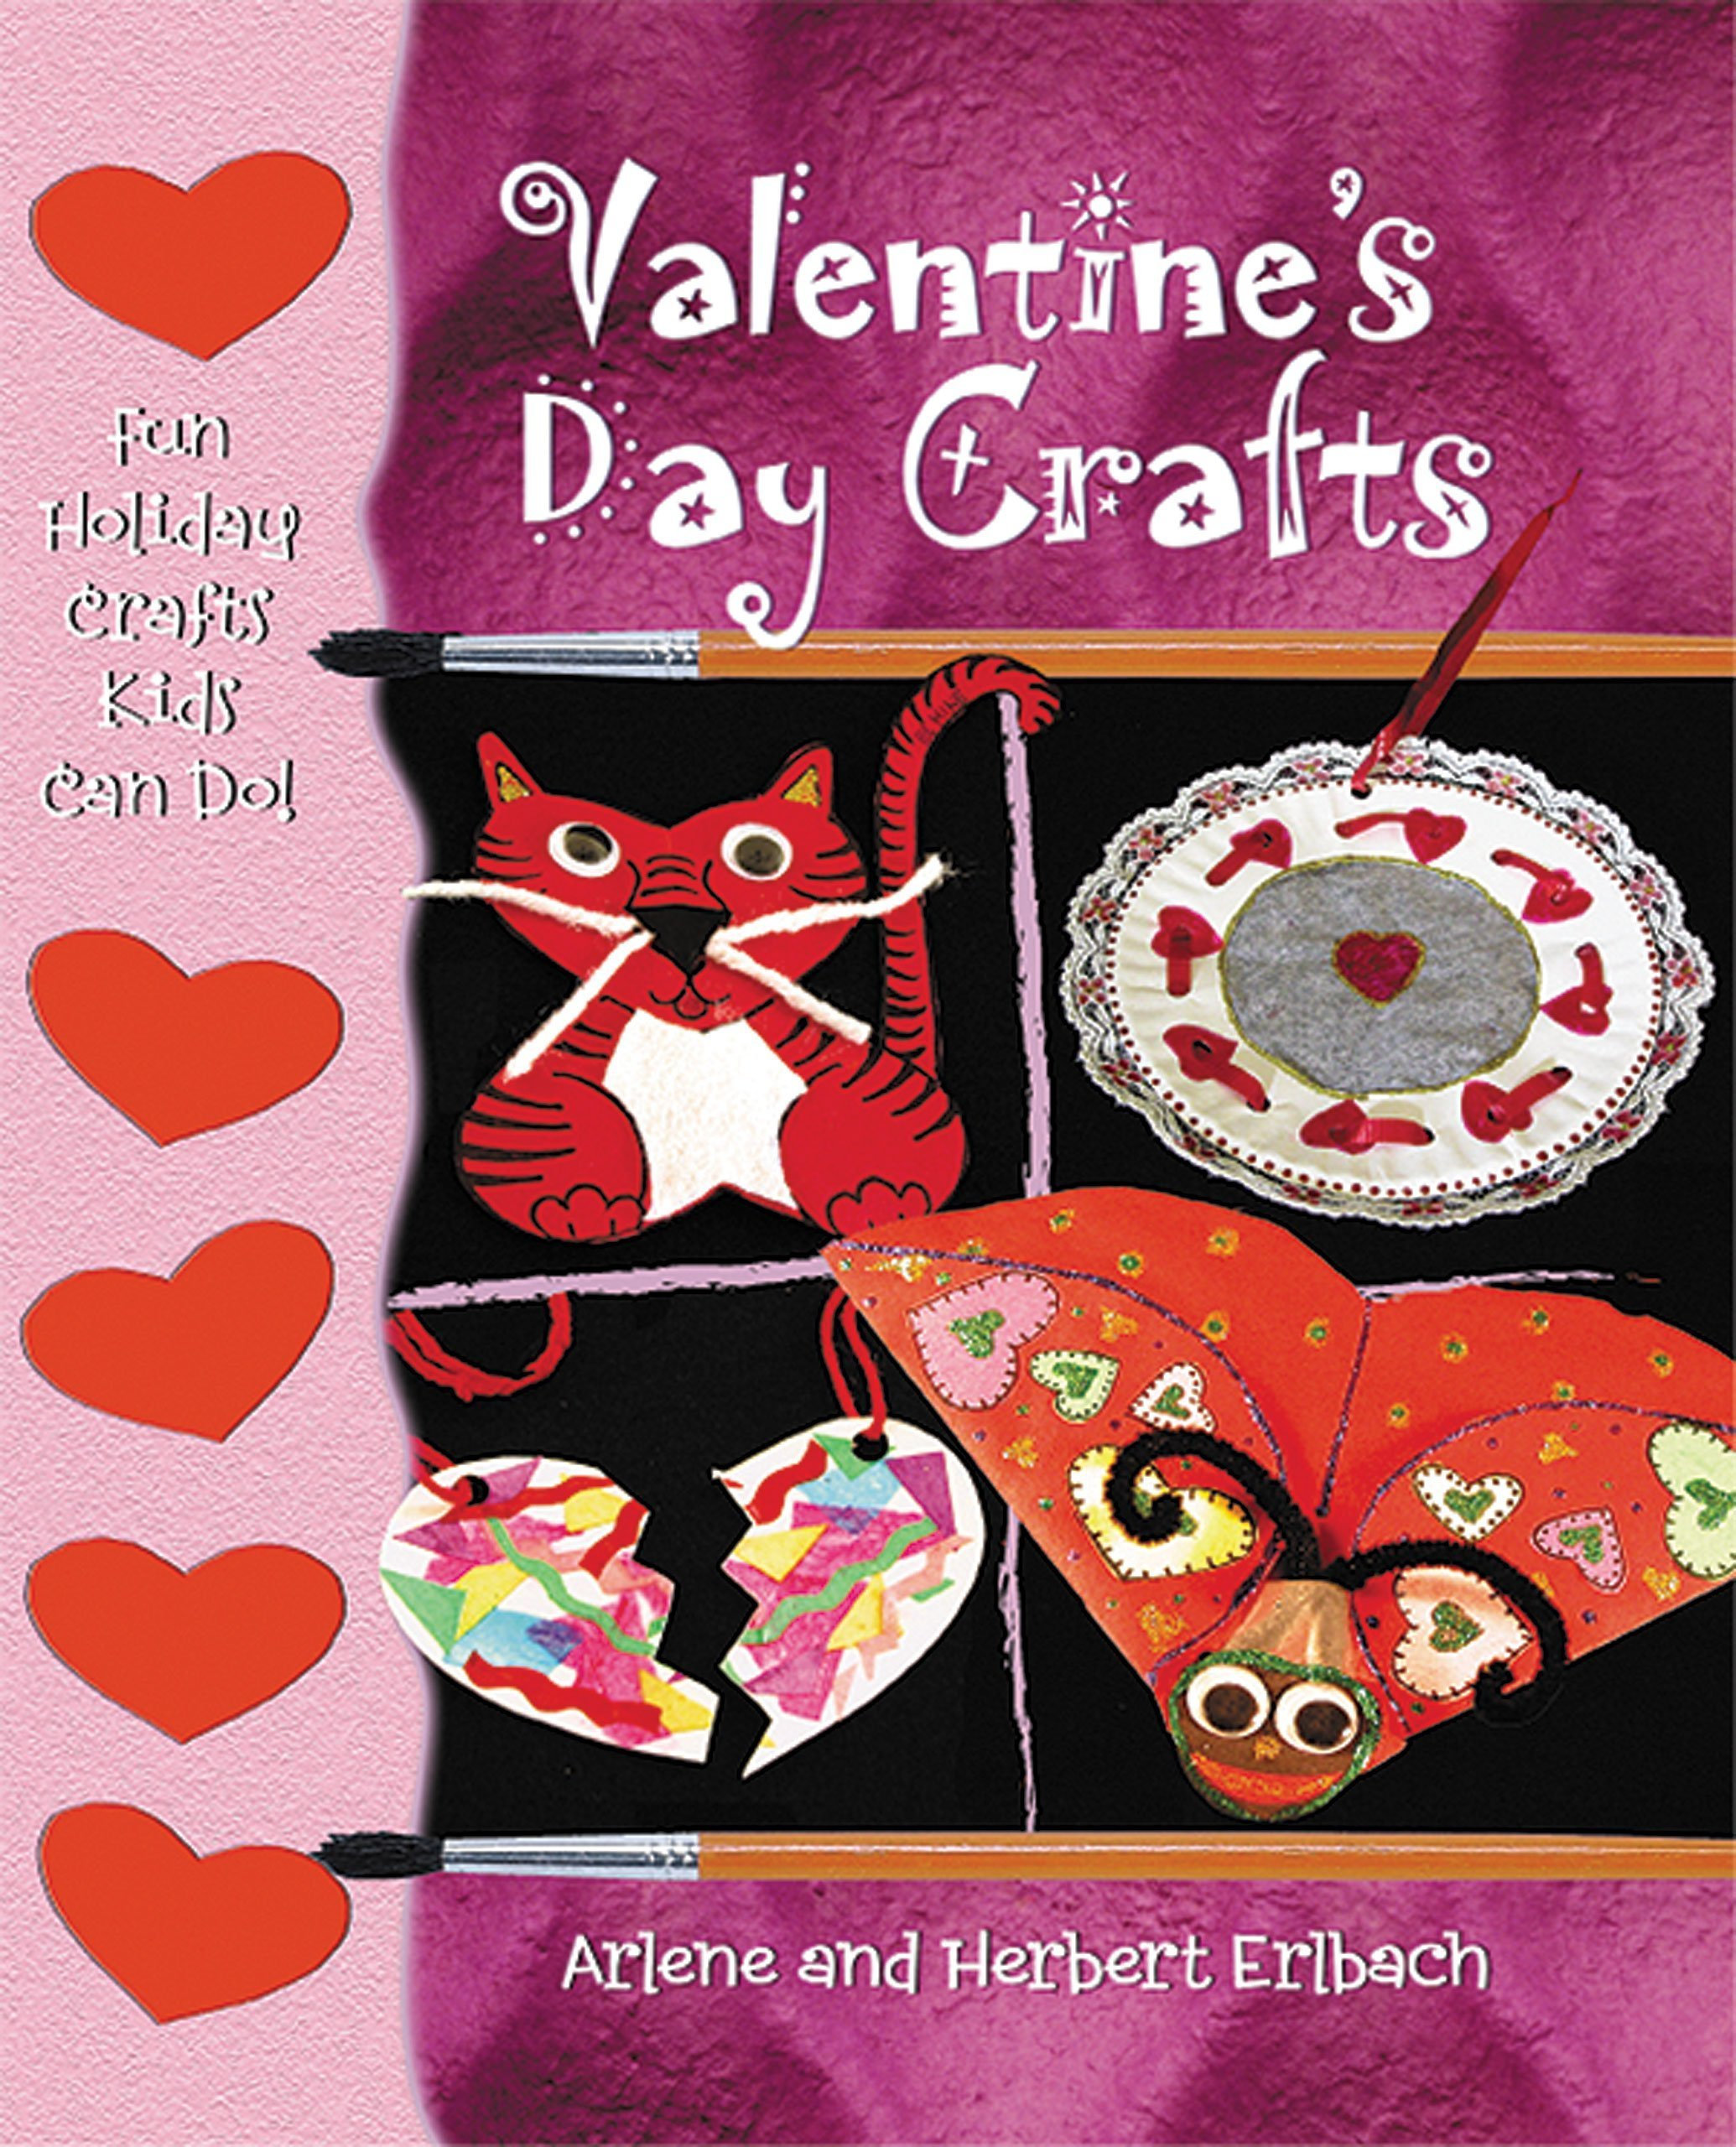 Valentine S Day Crafts Fun Holiday Crafts Kids Can Do Arlene